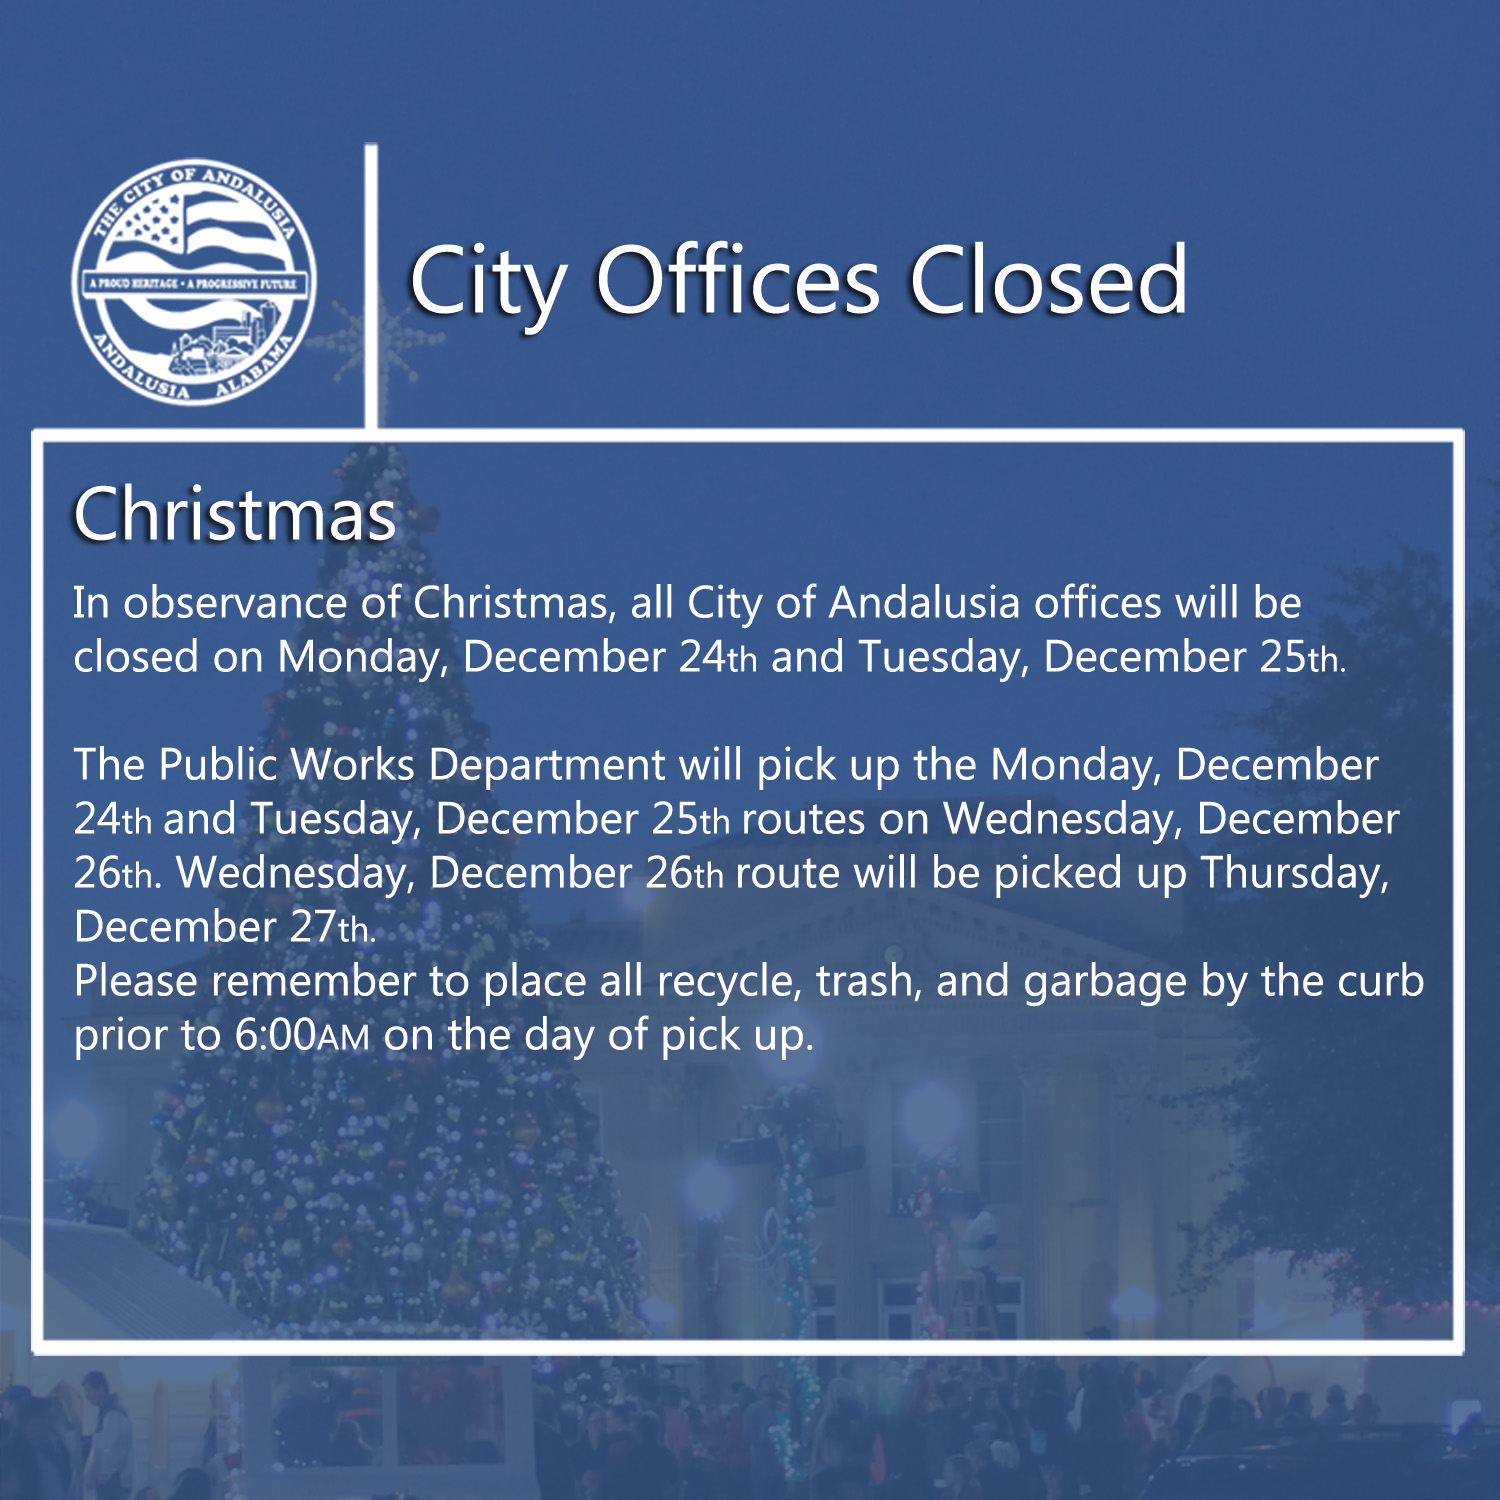 Facebook City Offices Closed Christmas 2018